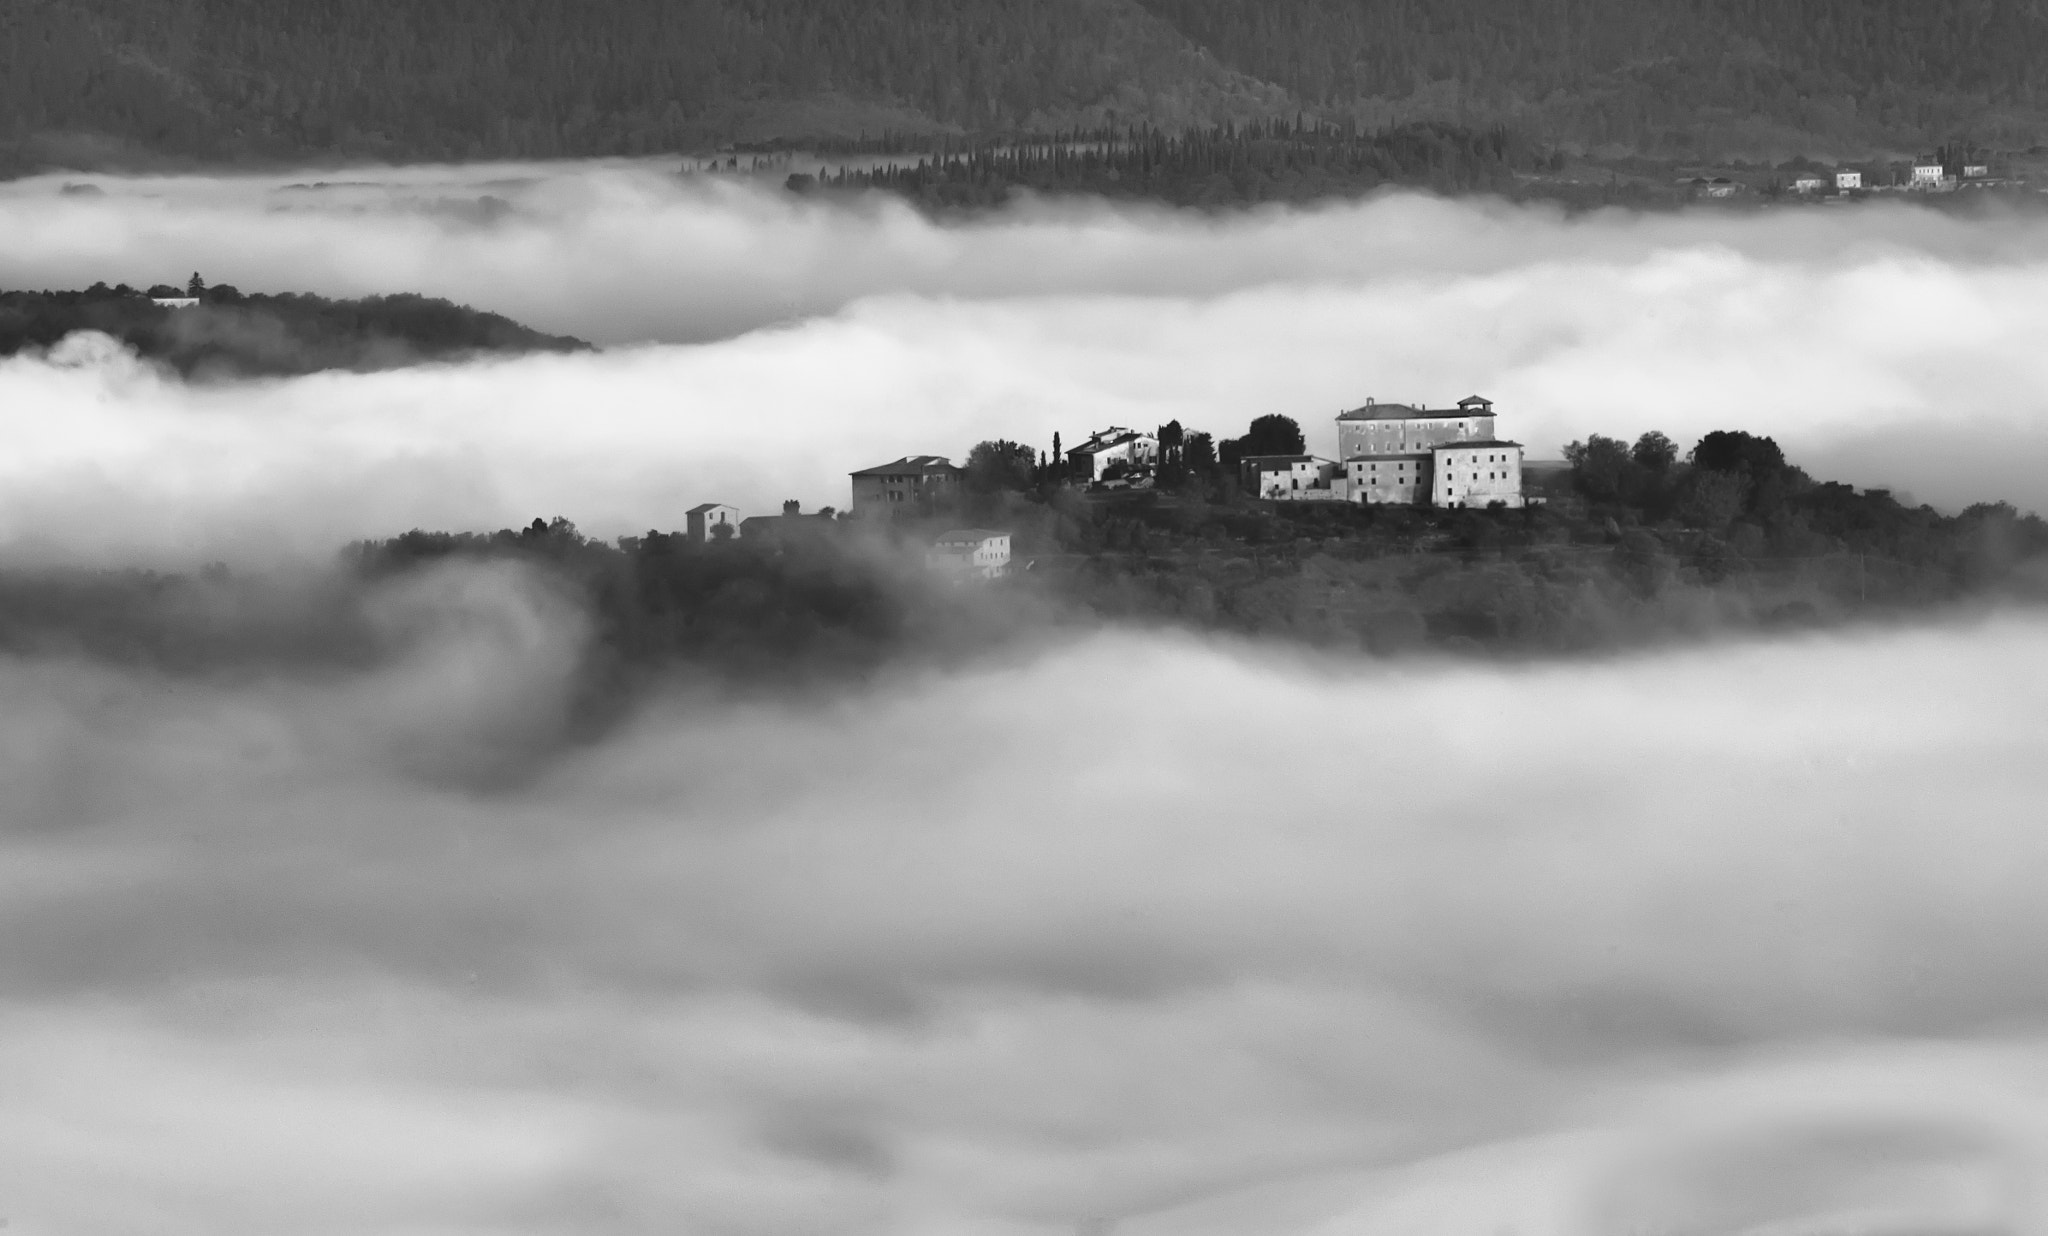 Photograph Above Clouds by Csilla Zelko on 500px